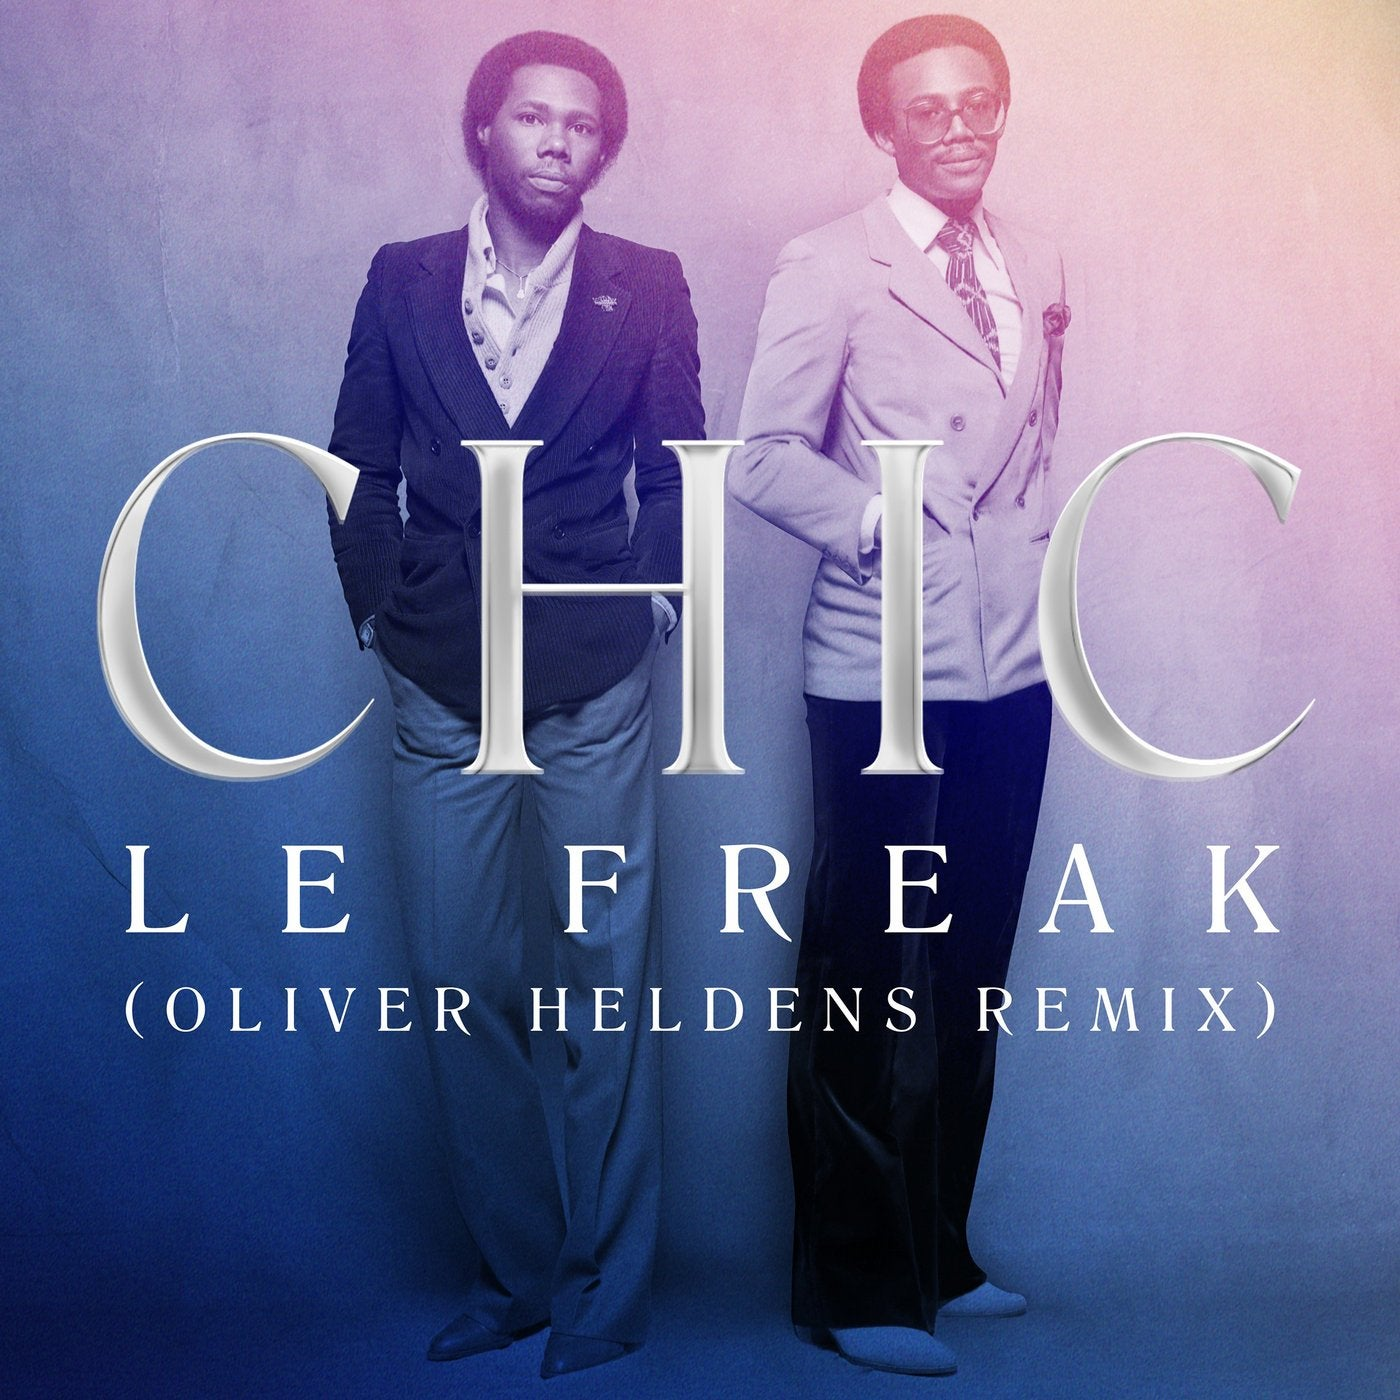 Le Freak (Oliver Helden's Extended Mix)